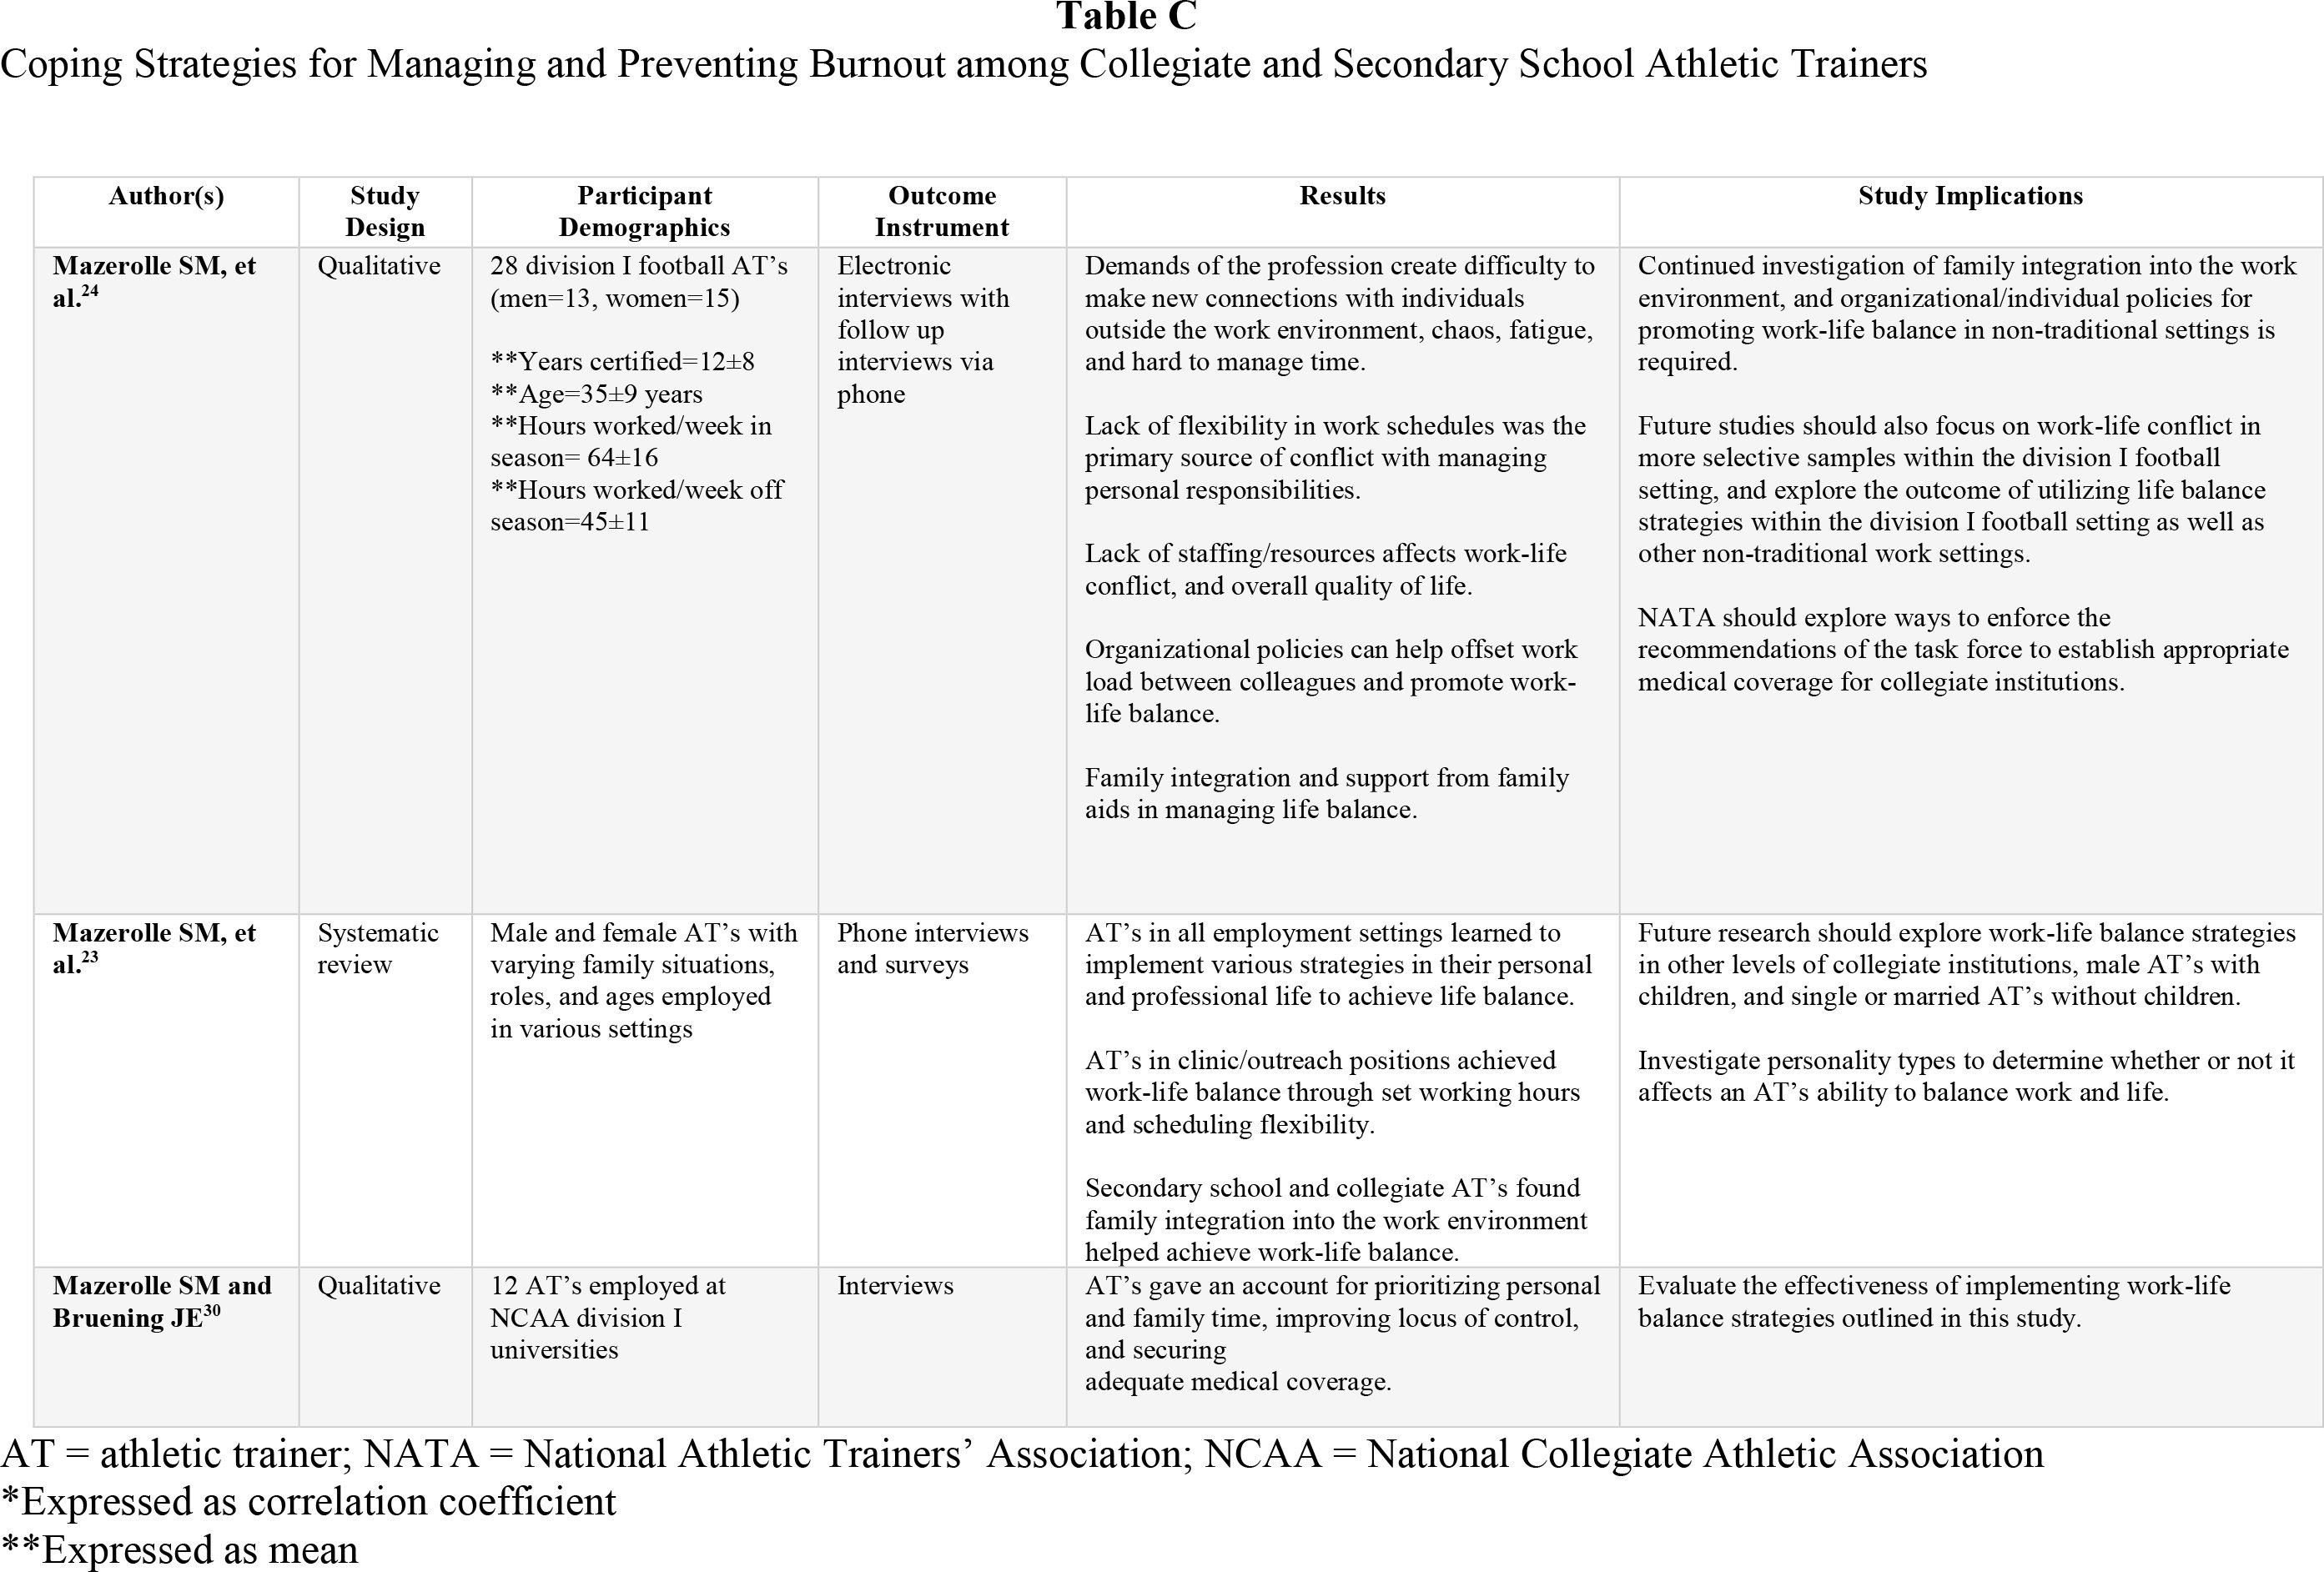 Coping Strategies for Managing and Preventing Burnout among Collegiate and Secondary School Athletic Trainers